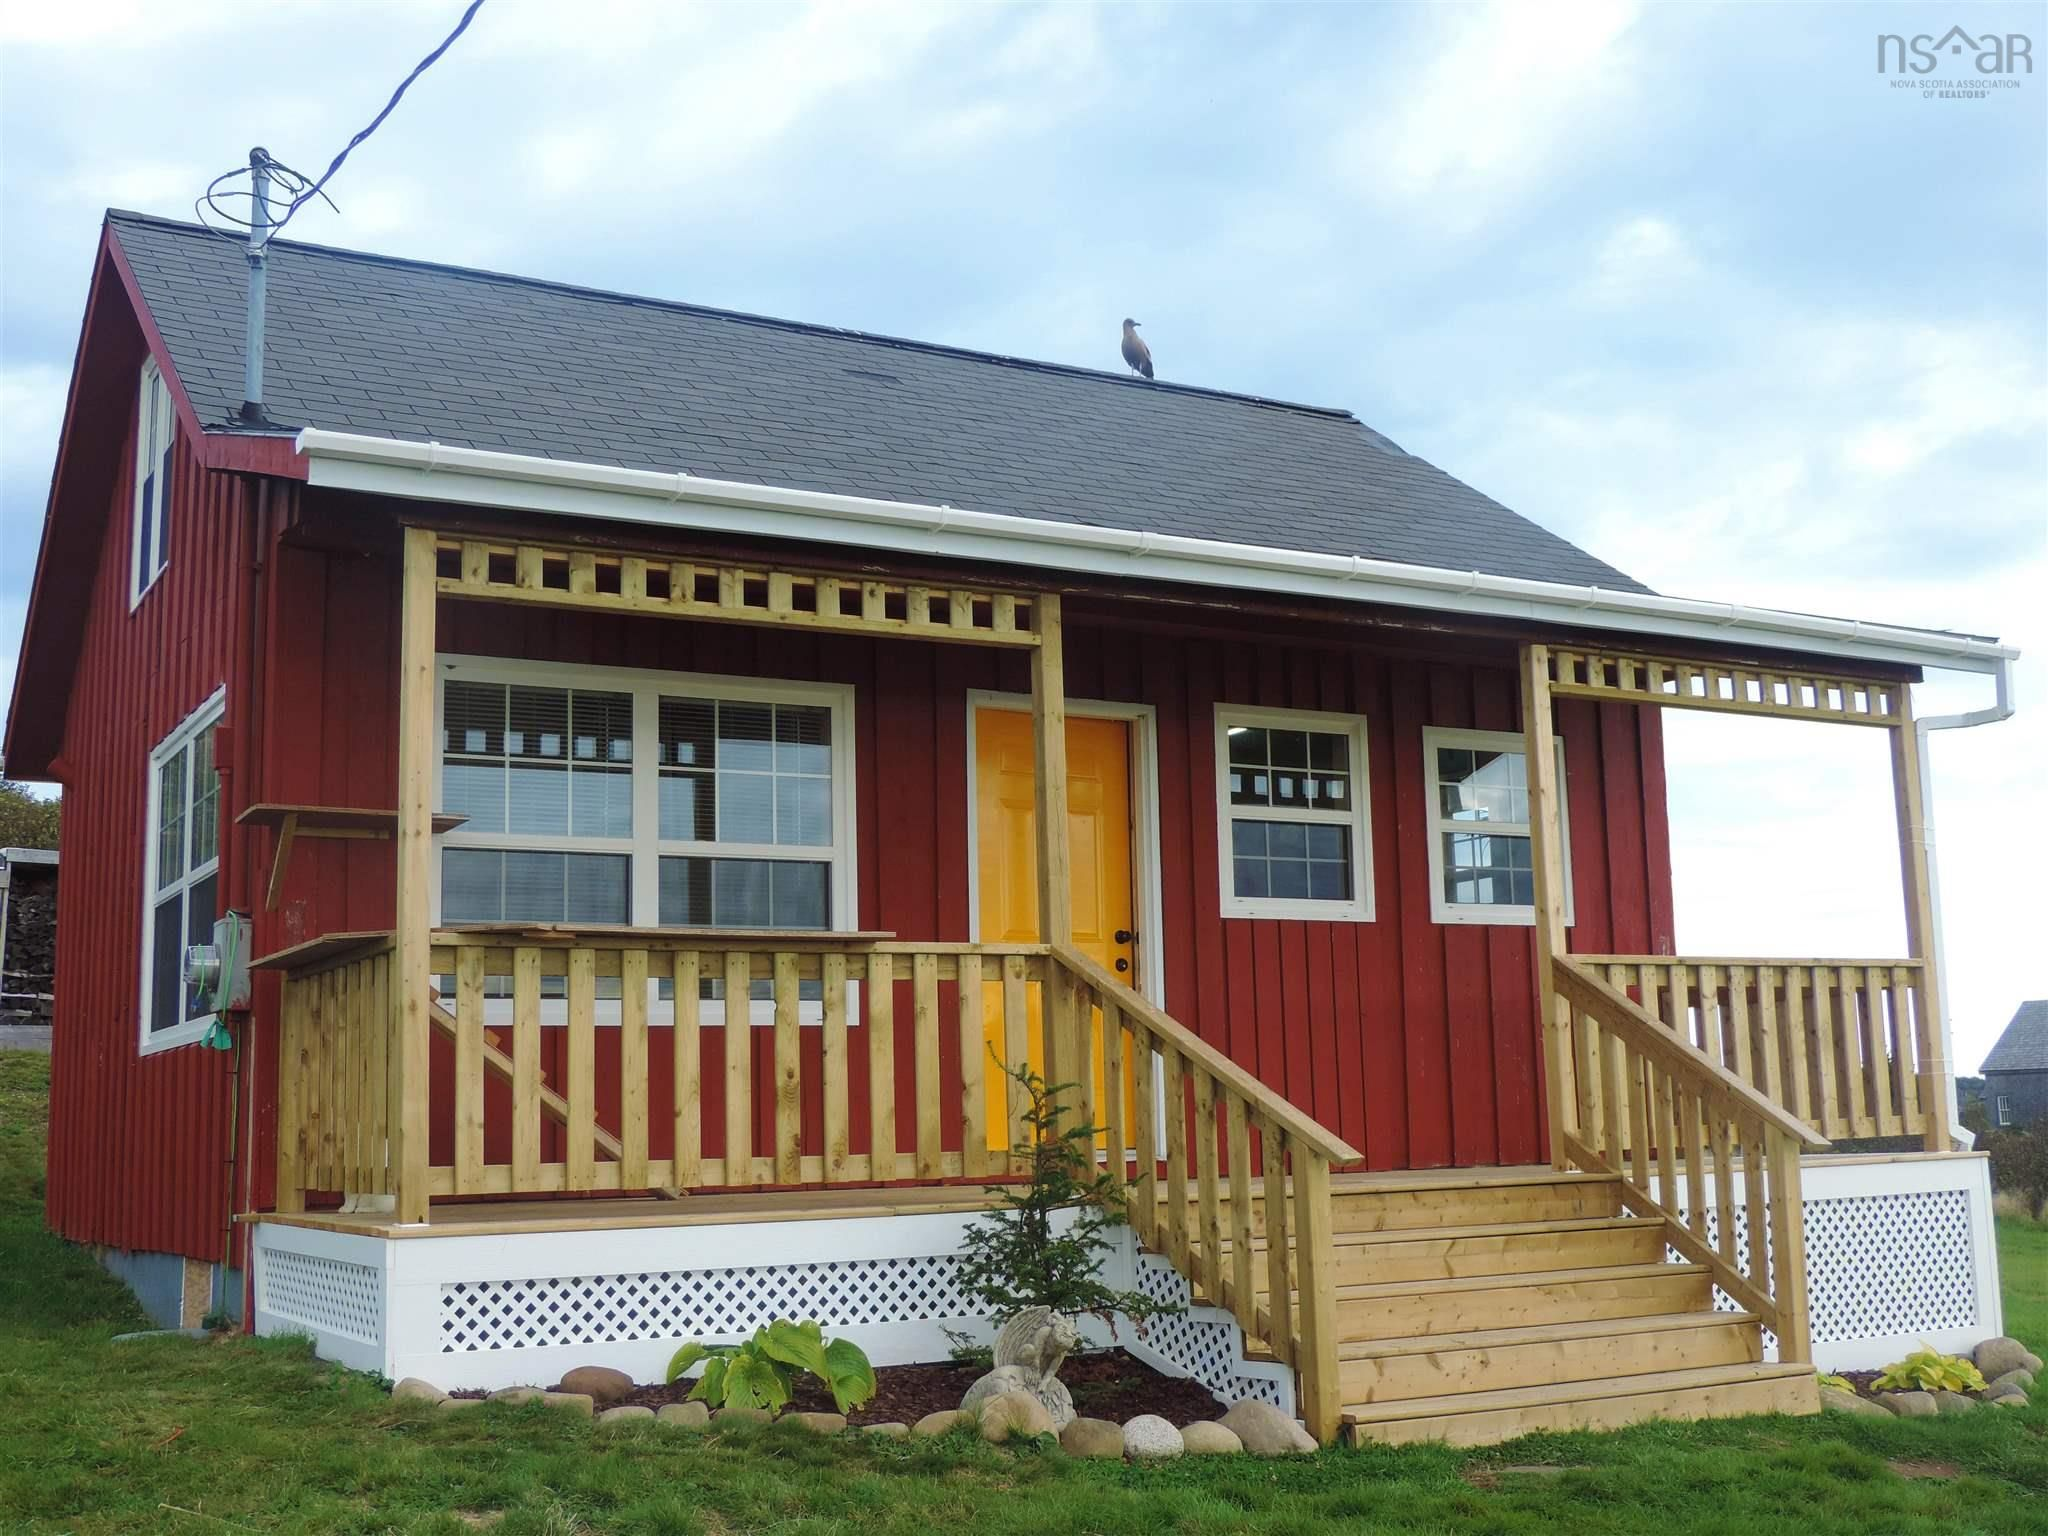 Main Photo: 111 Water Street in Freeport: 401-Digby County Residential for sale (Annapolis Valley)  : MLS®# 202125331